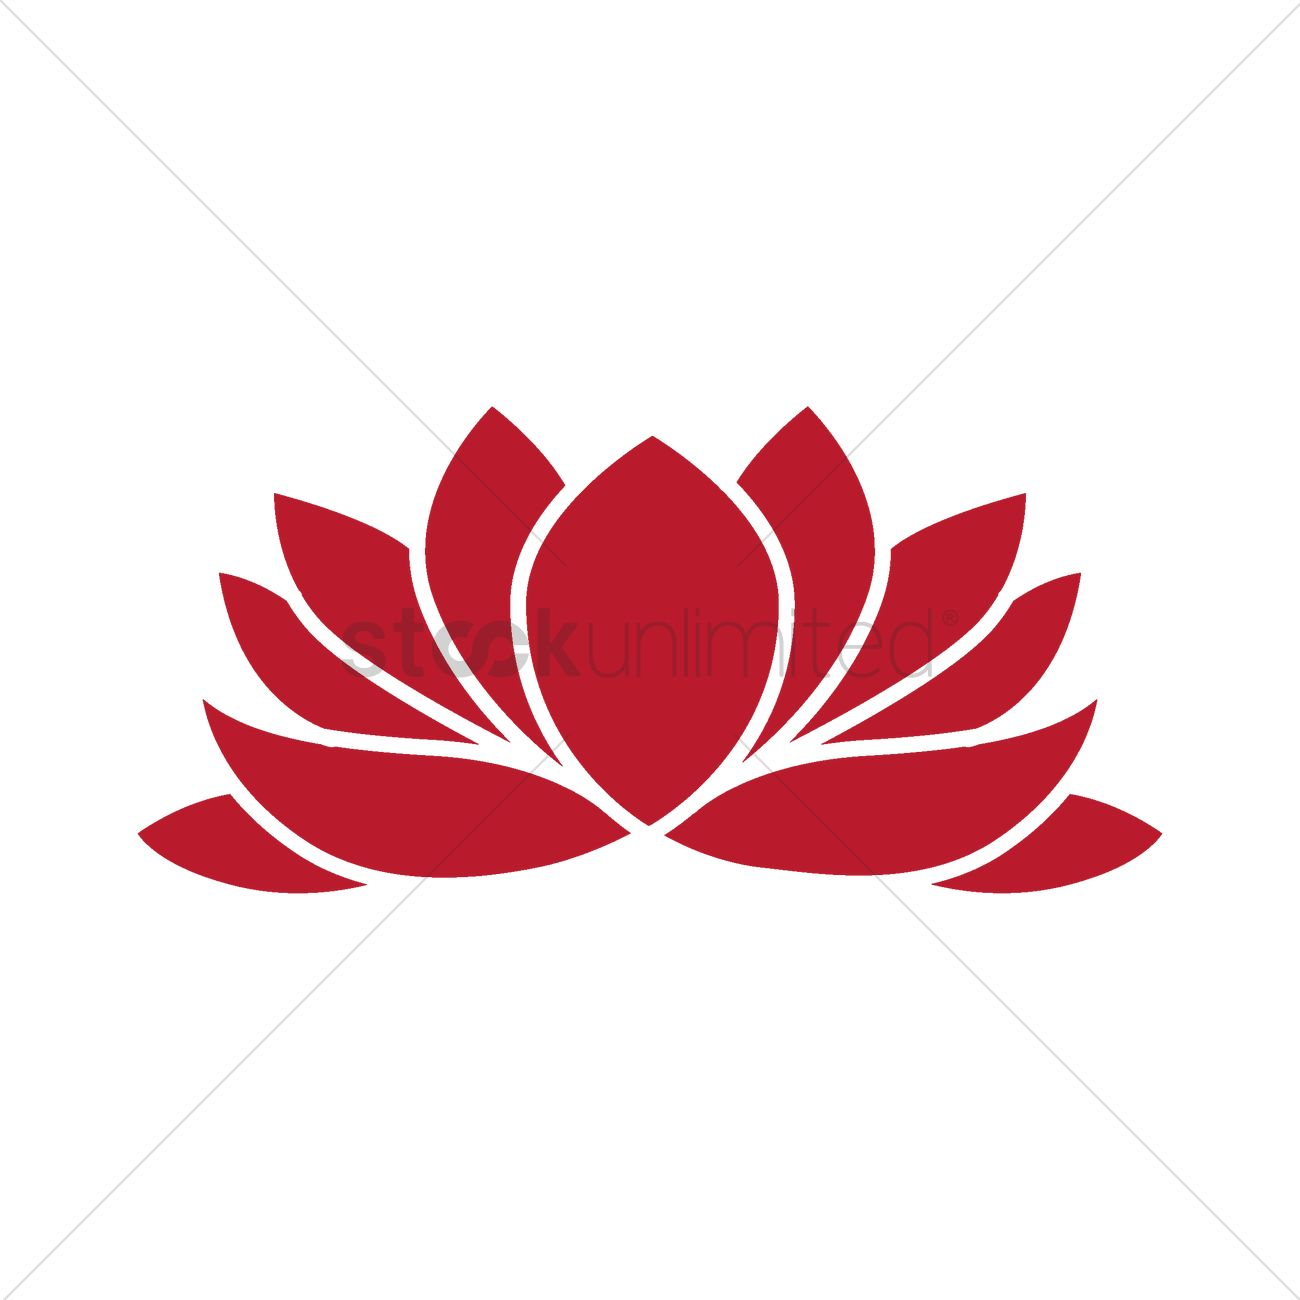 Lotus flower vector image 1968445 stockunlimited lotus flower vector graphic izmirmasajfo